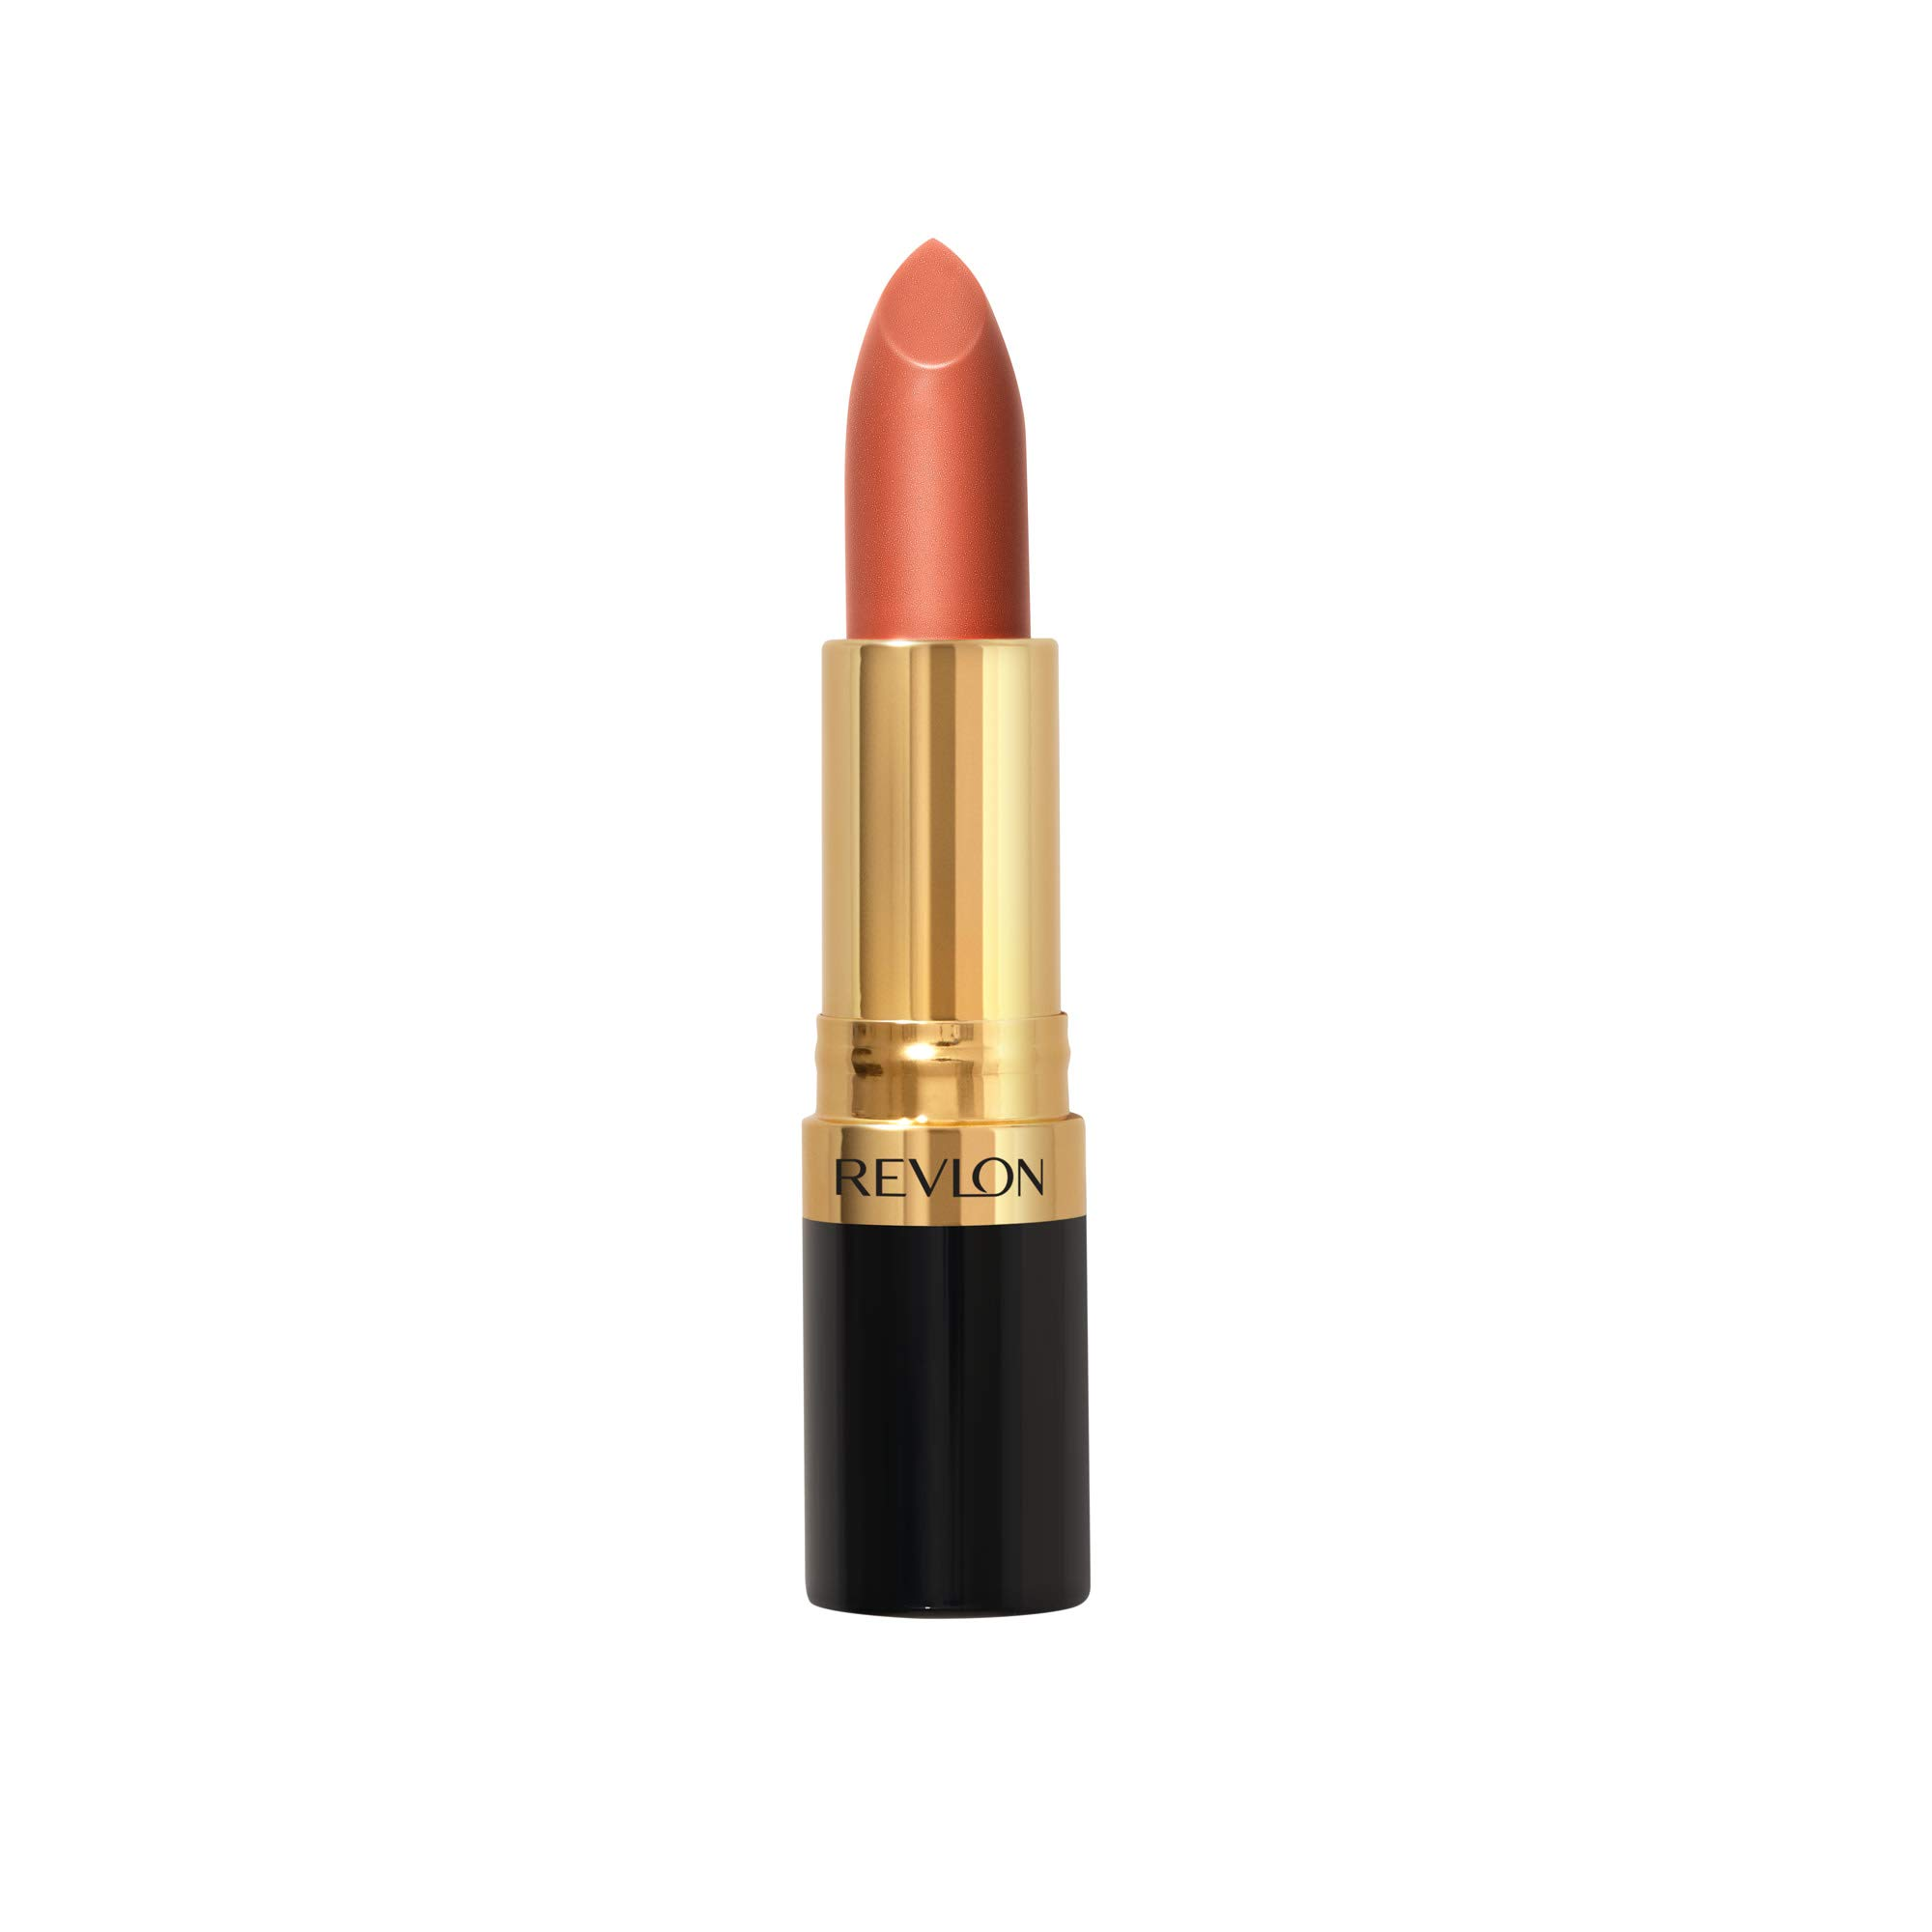 Revlon Super Lustrous Lipstick, High Impact Lipcolor with Moisturizing Creamy Formula, Infused with Vitamin E and Avocado Oil in Red / Coral Pearl, Peach Me (628)